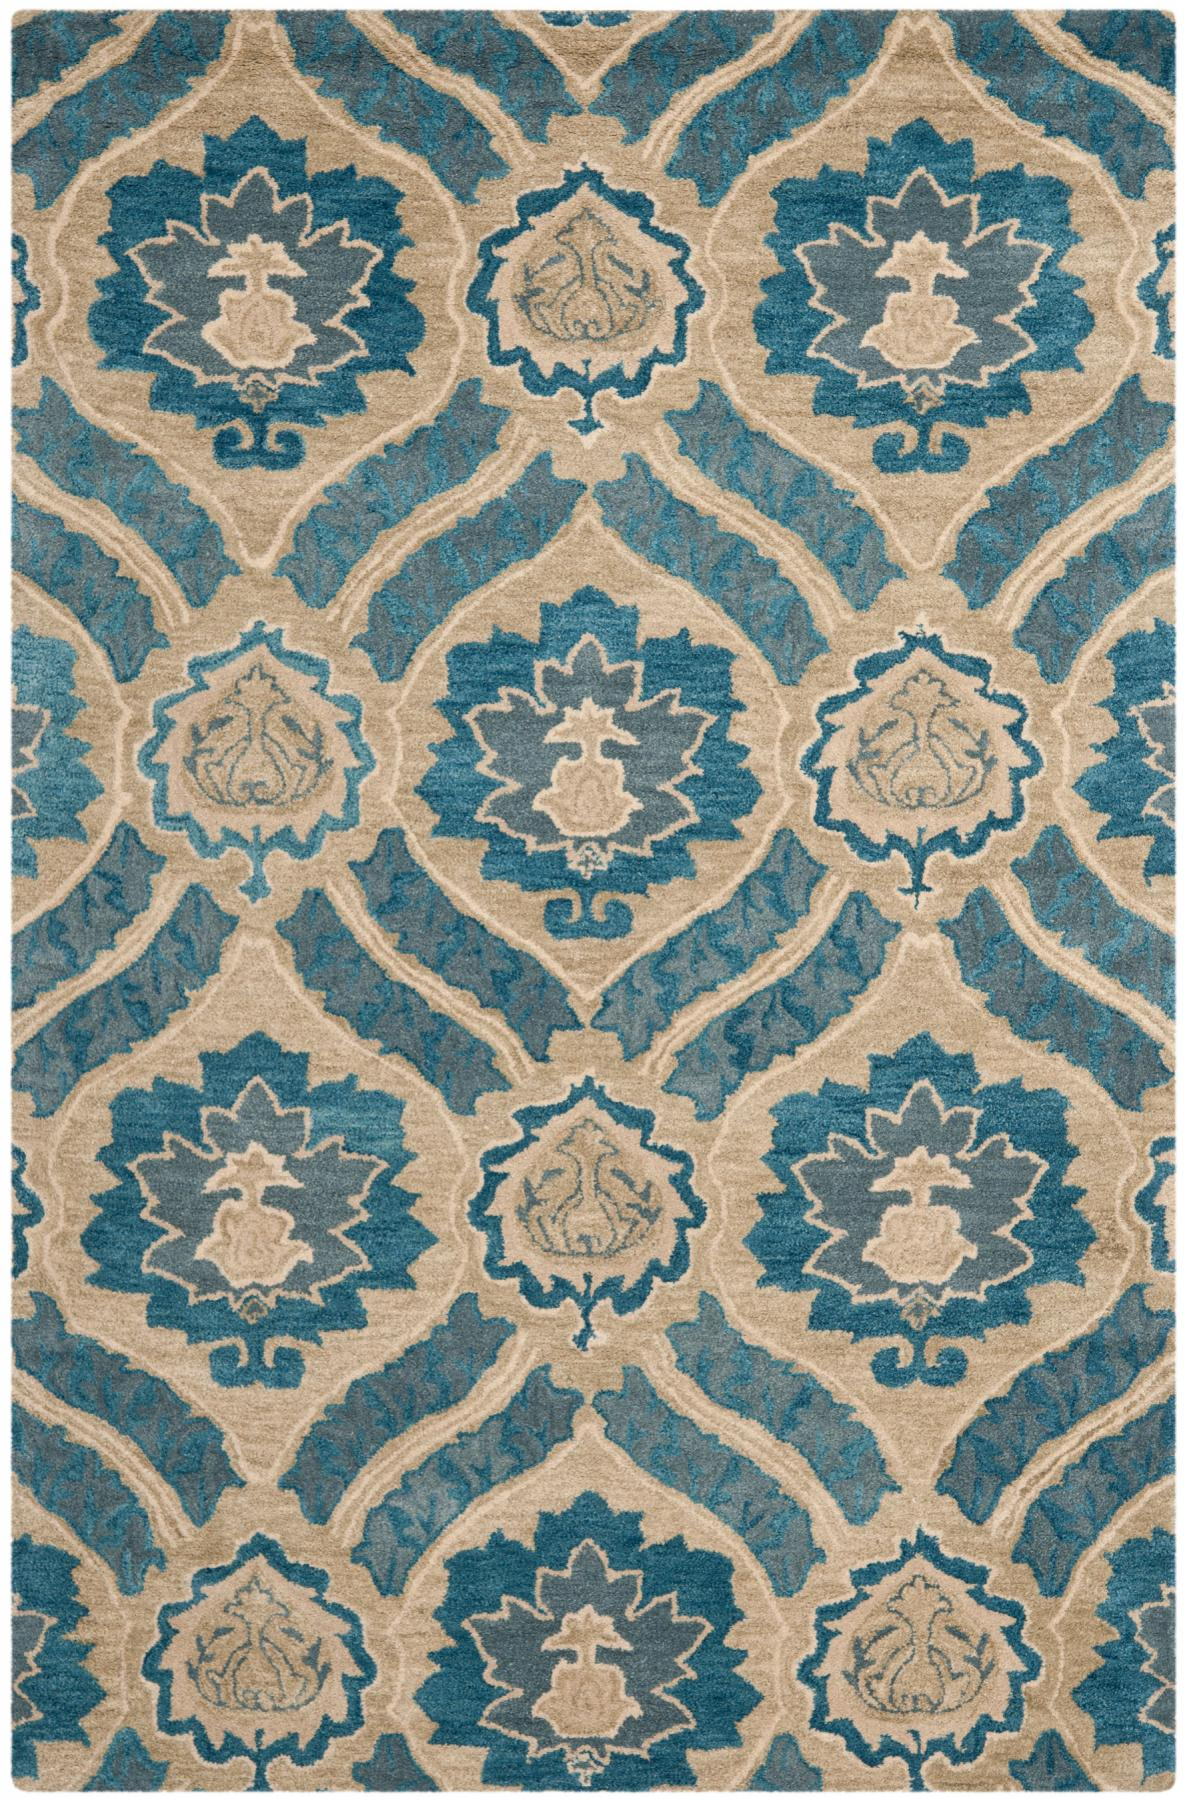 Square Rugs 7x7 | Blue Area Rugs 5x7 | Turquoise Area Rugs